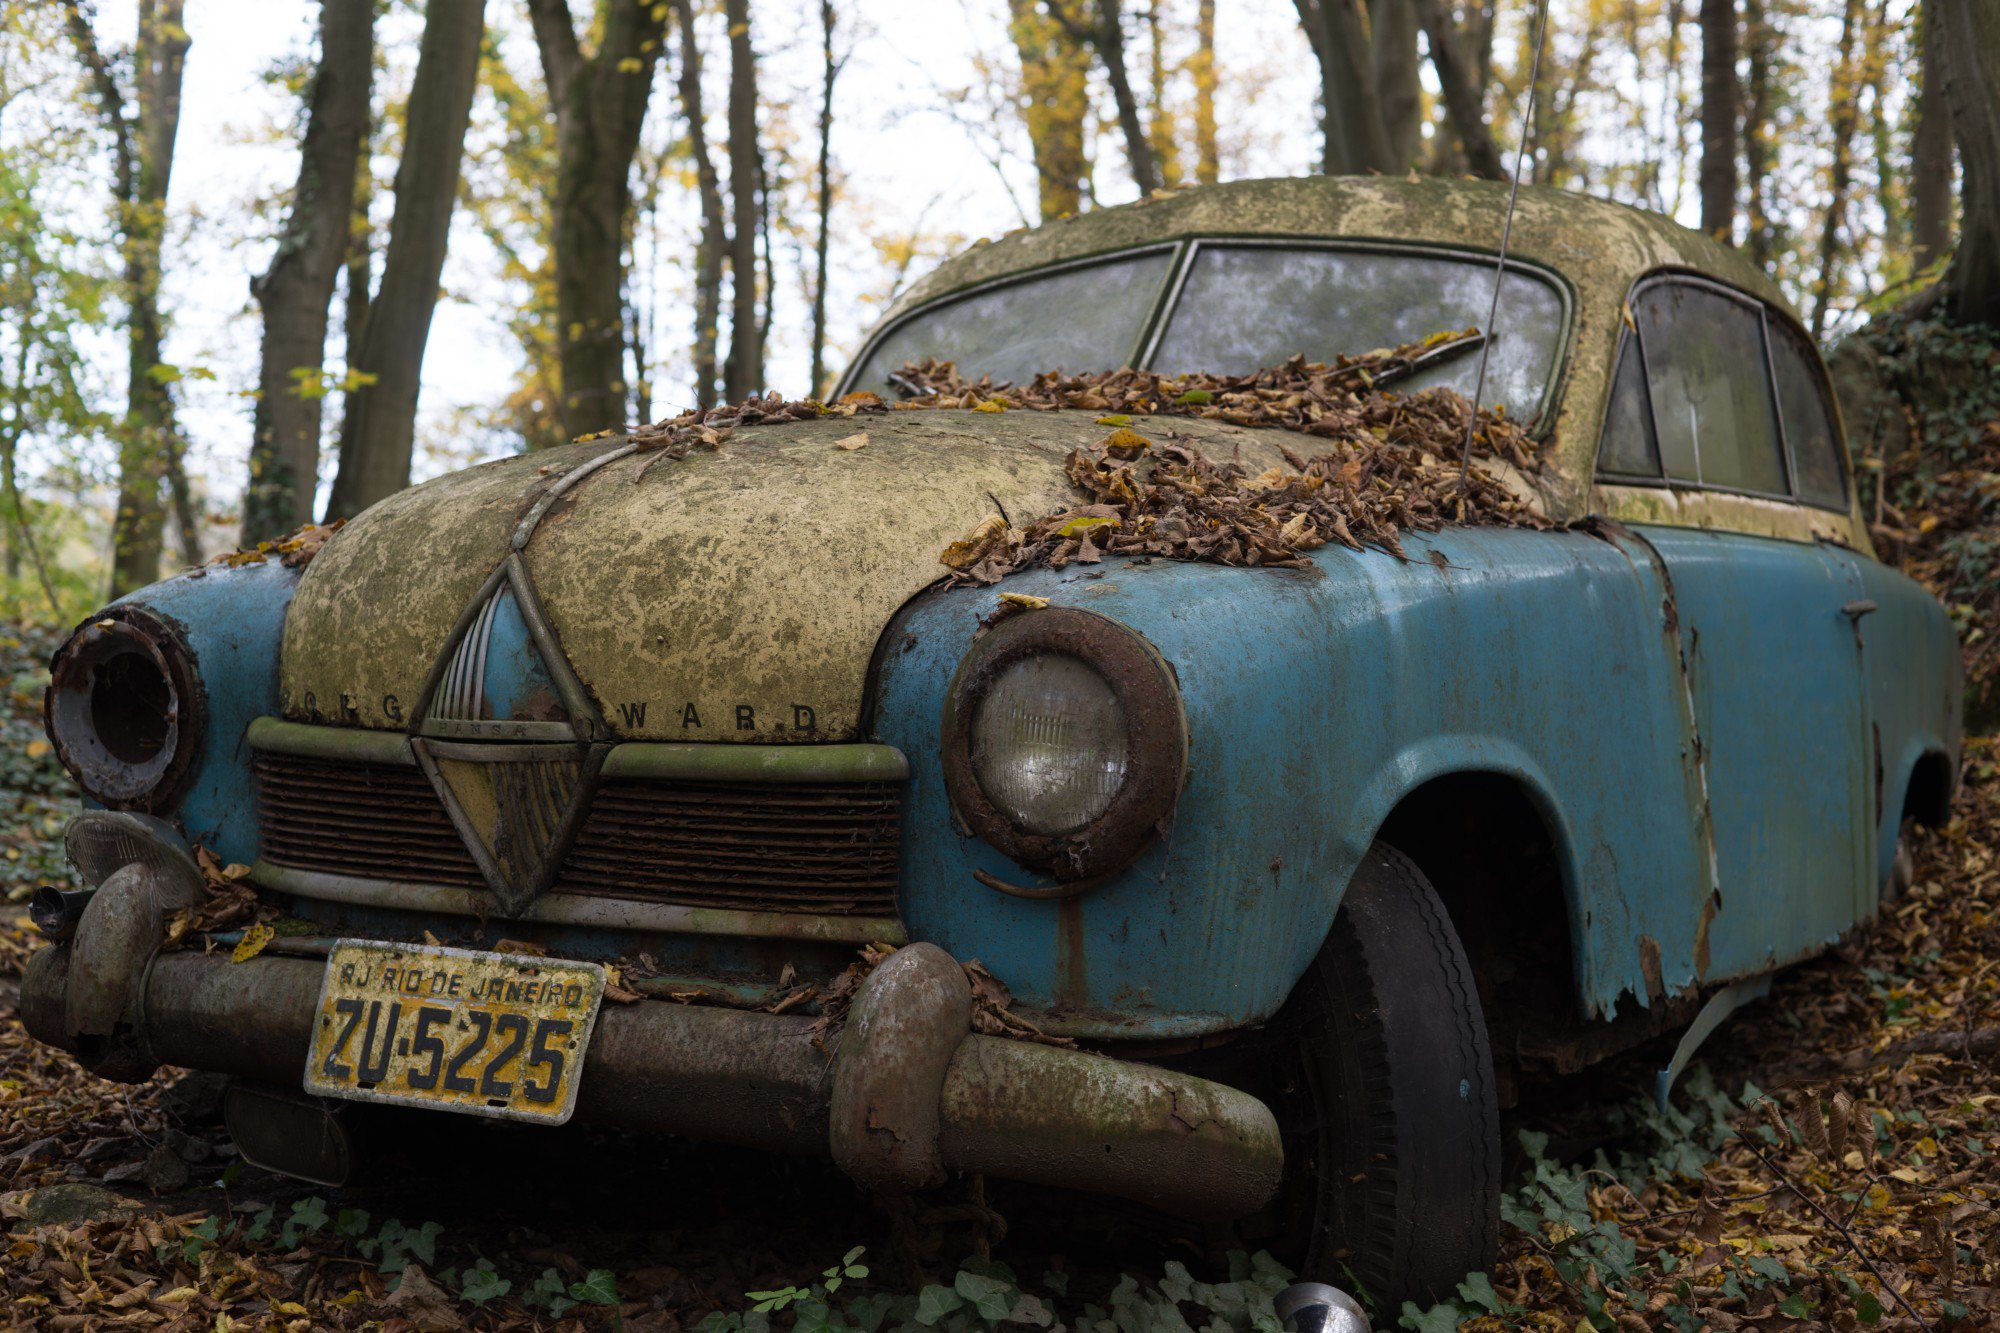 The Easiest Way to Get Rid of Junk Cars: A Step-By-Step Guide